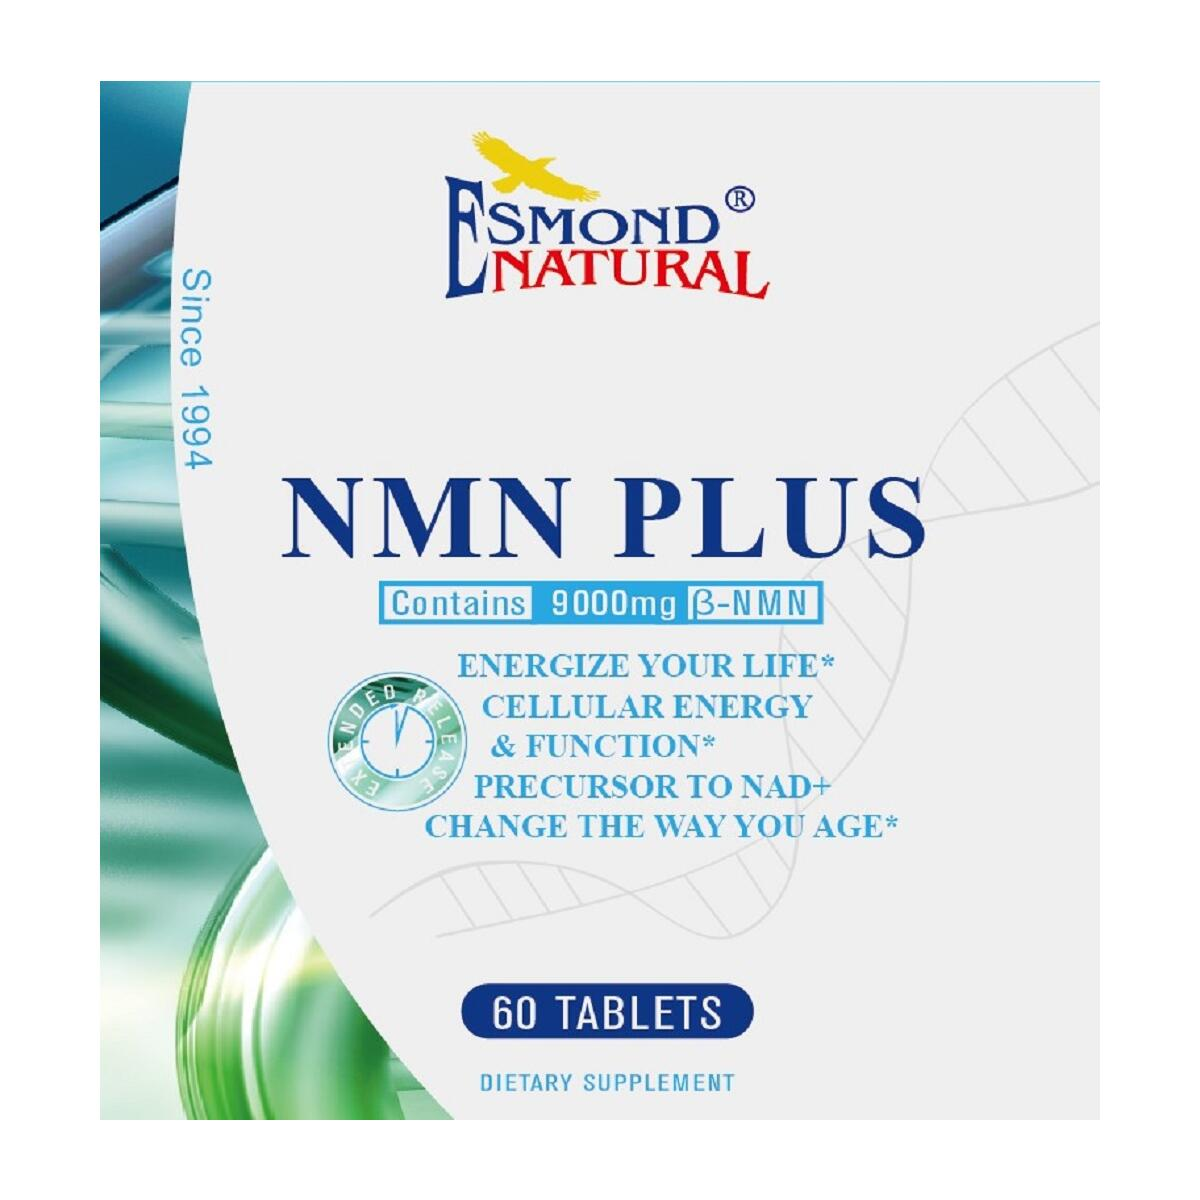 Esmond Natural: NMN Plus (Changes The Way You Age, 300mg NMN+30mg Trans Resveratrol, Total 9000mg Beta-NMN), GMP, Natural Product Assn Certified, Made in USA-330mg, 60 Tablets